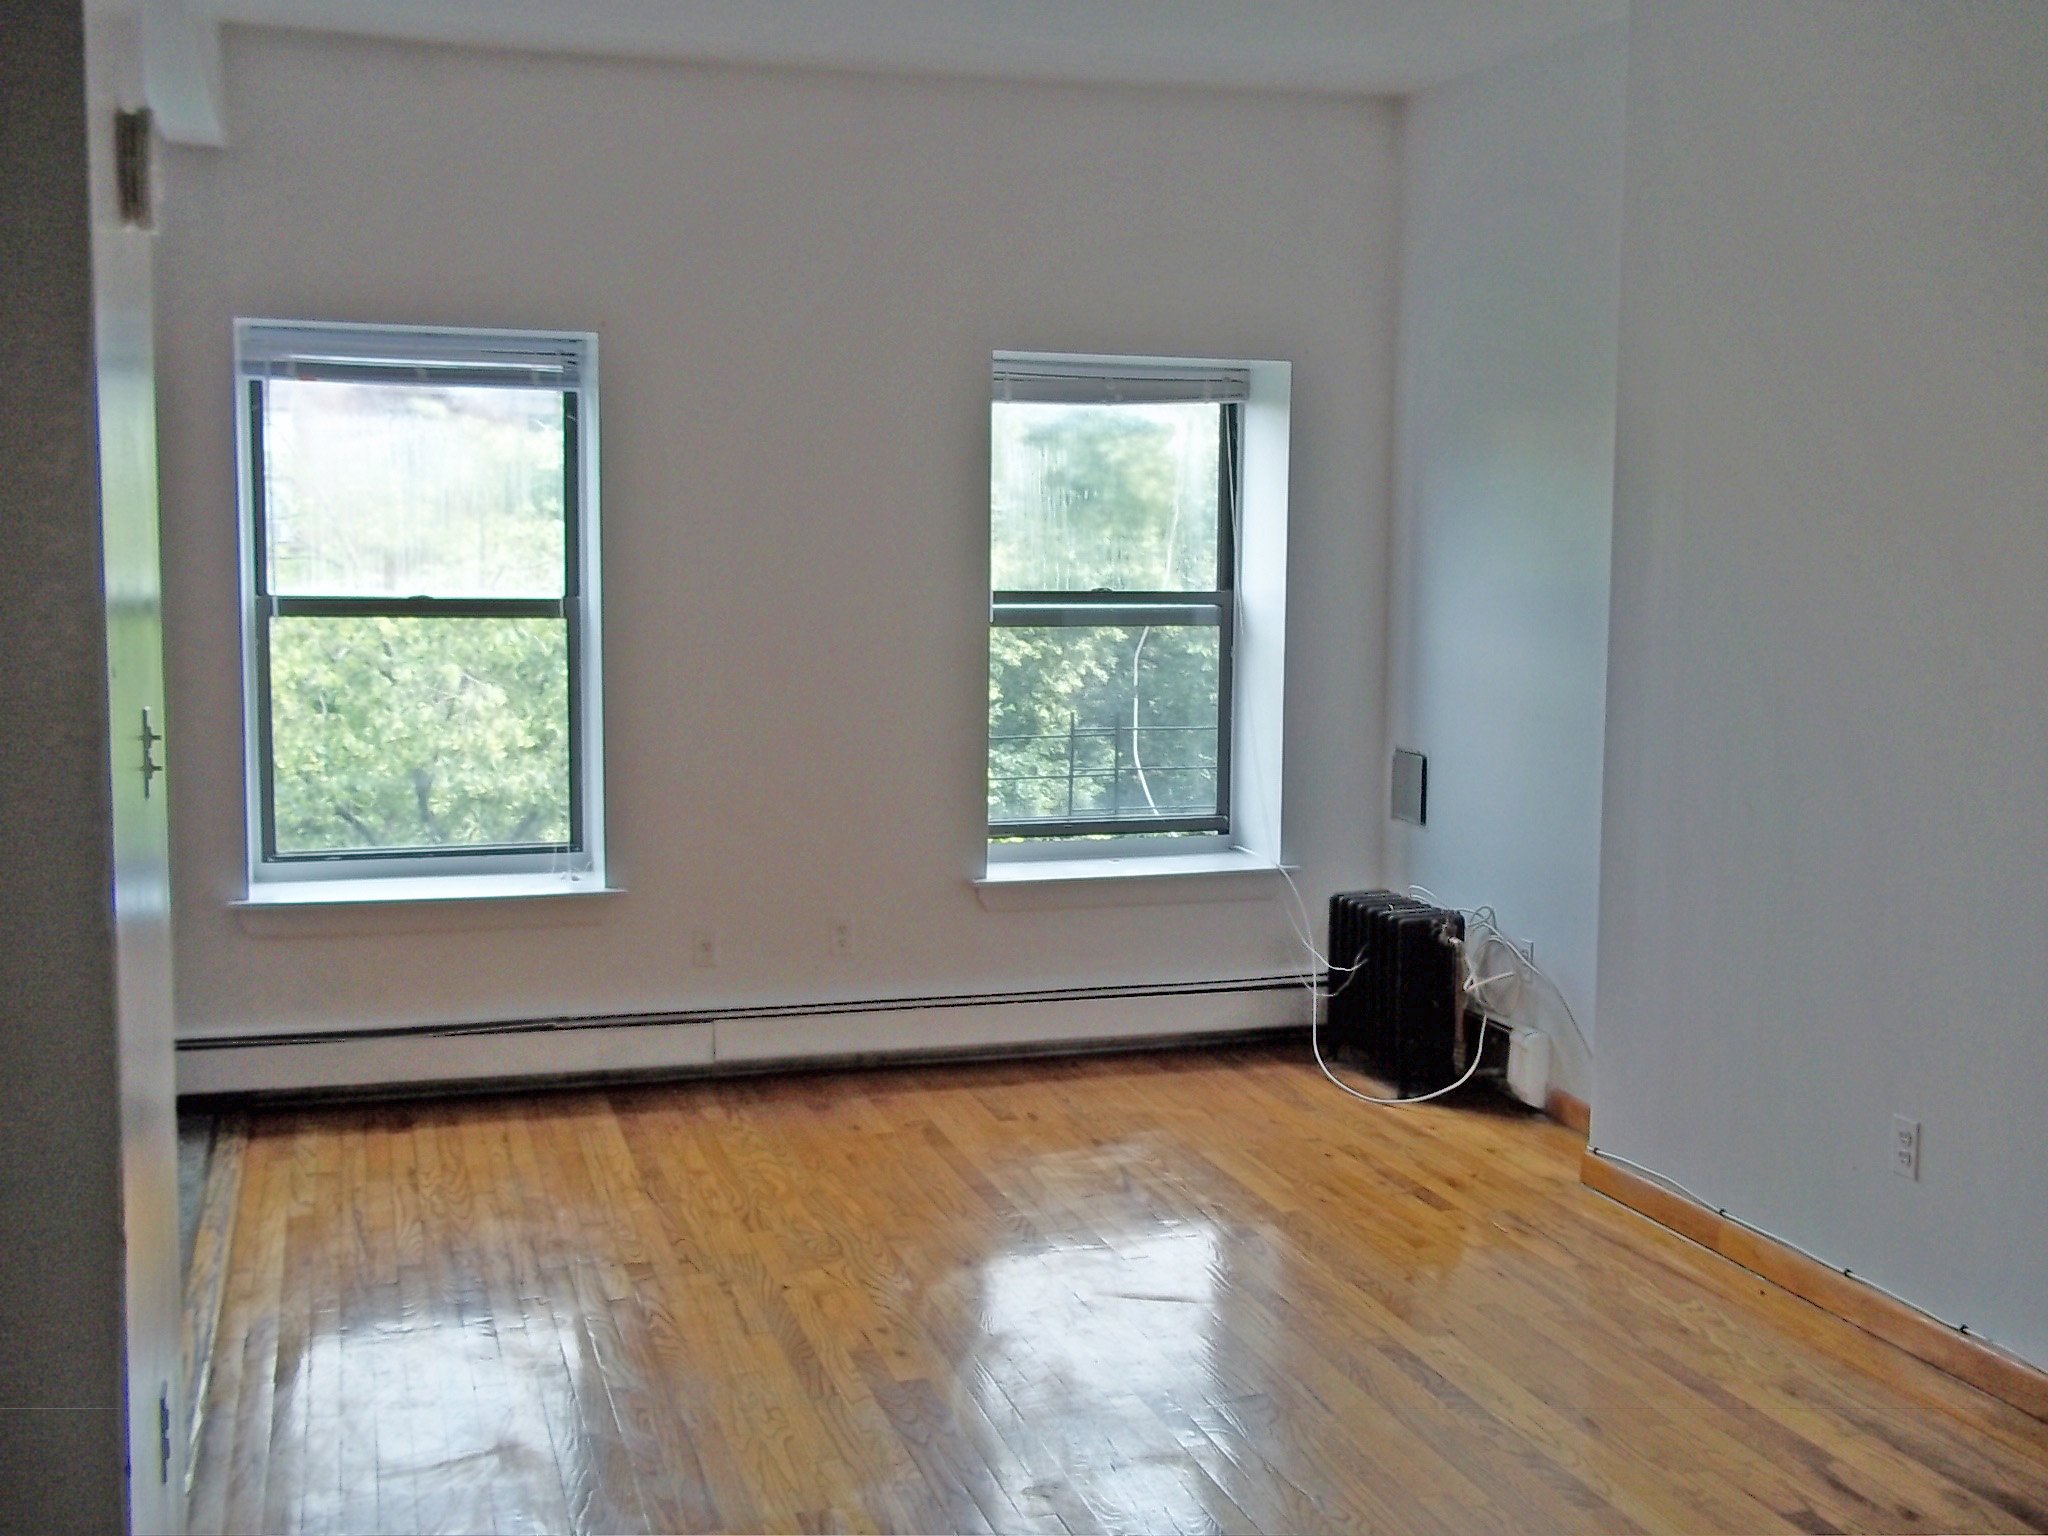 Bedford stuyvesant 1 bedroom apartment for rent brooklyn crg3113 for One bedroom for rent in brooklyn